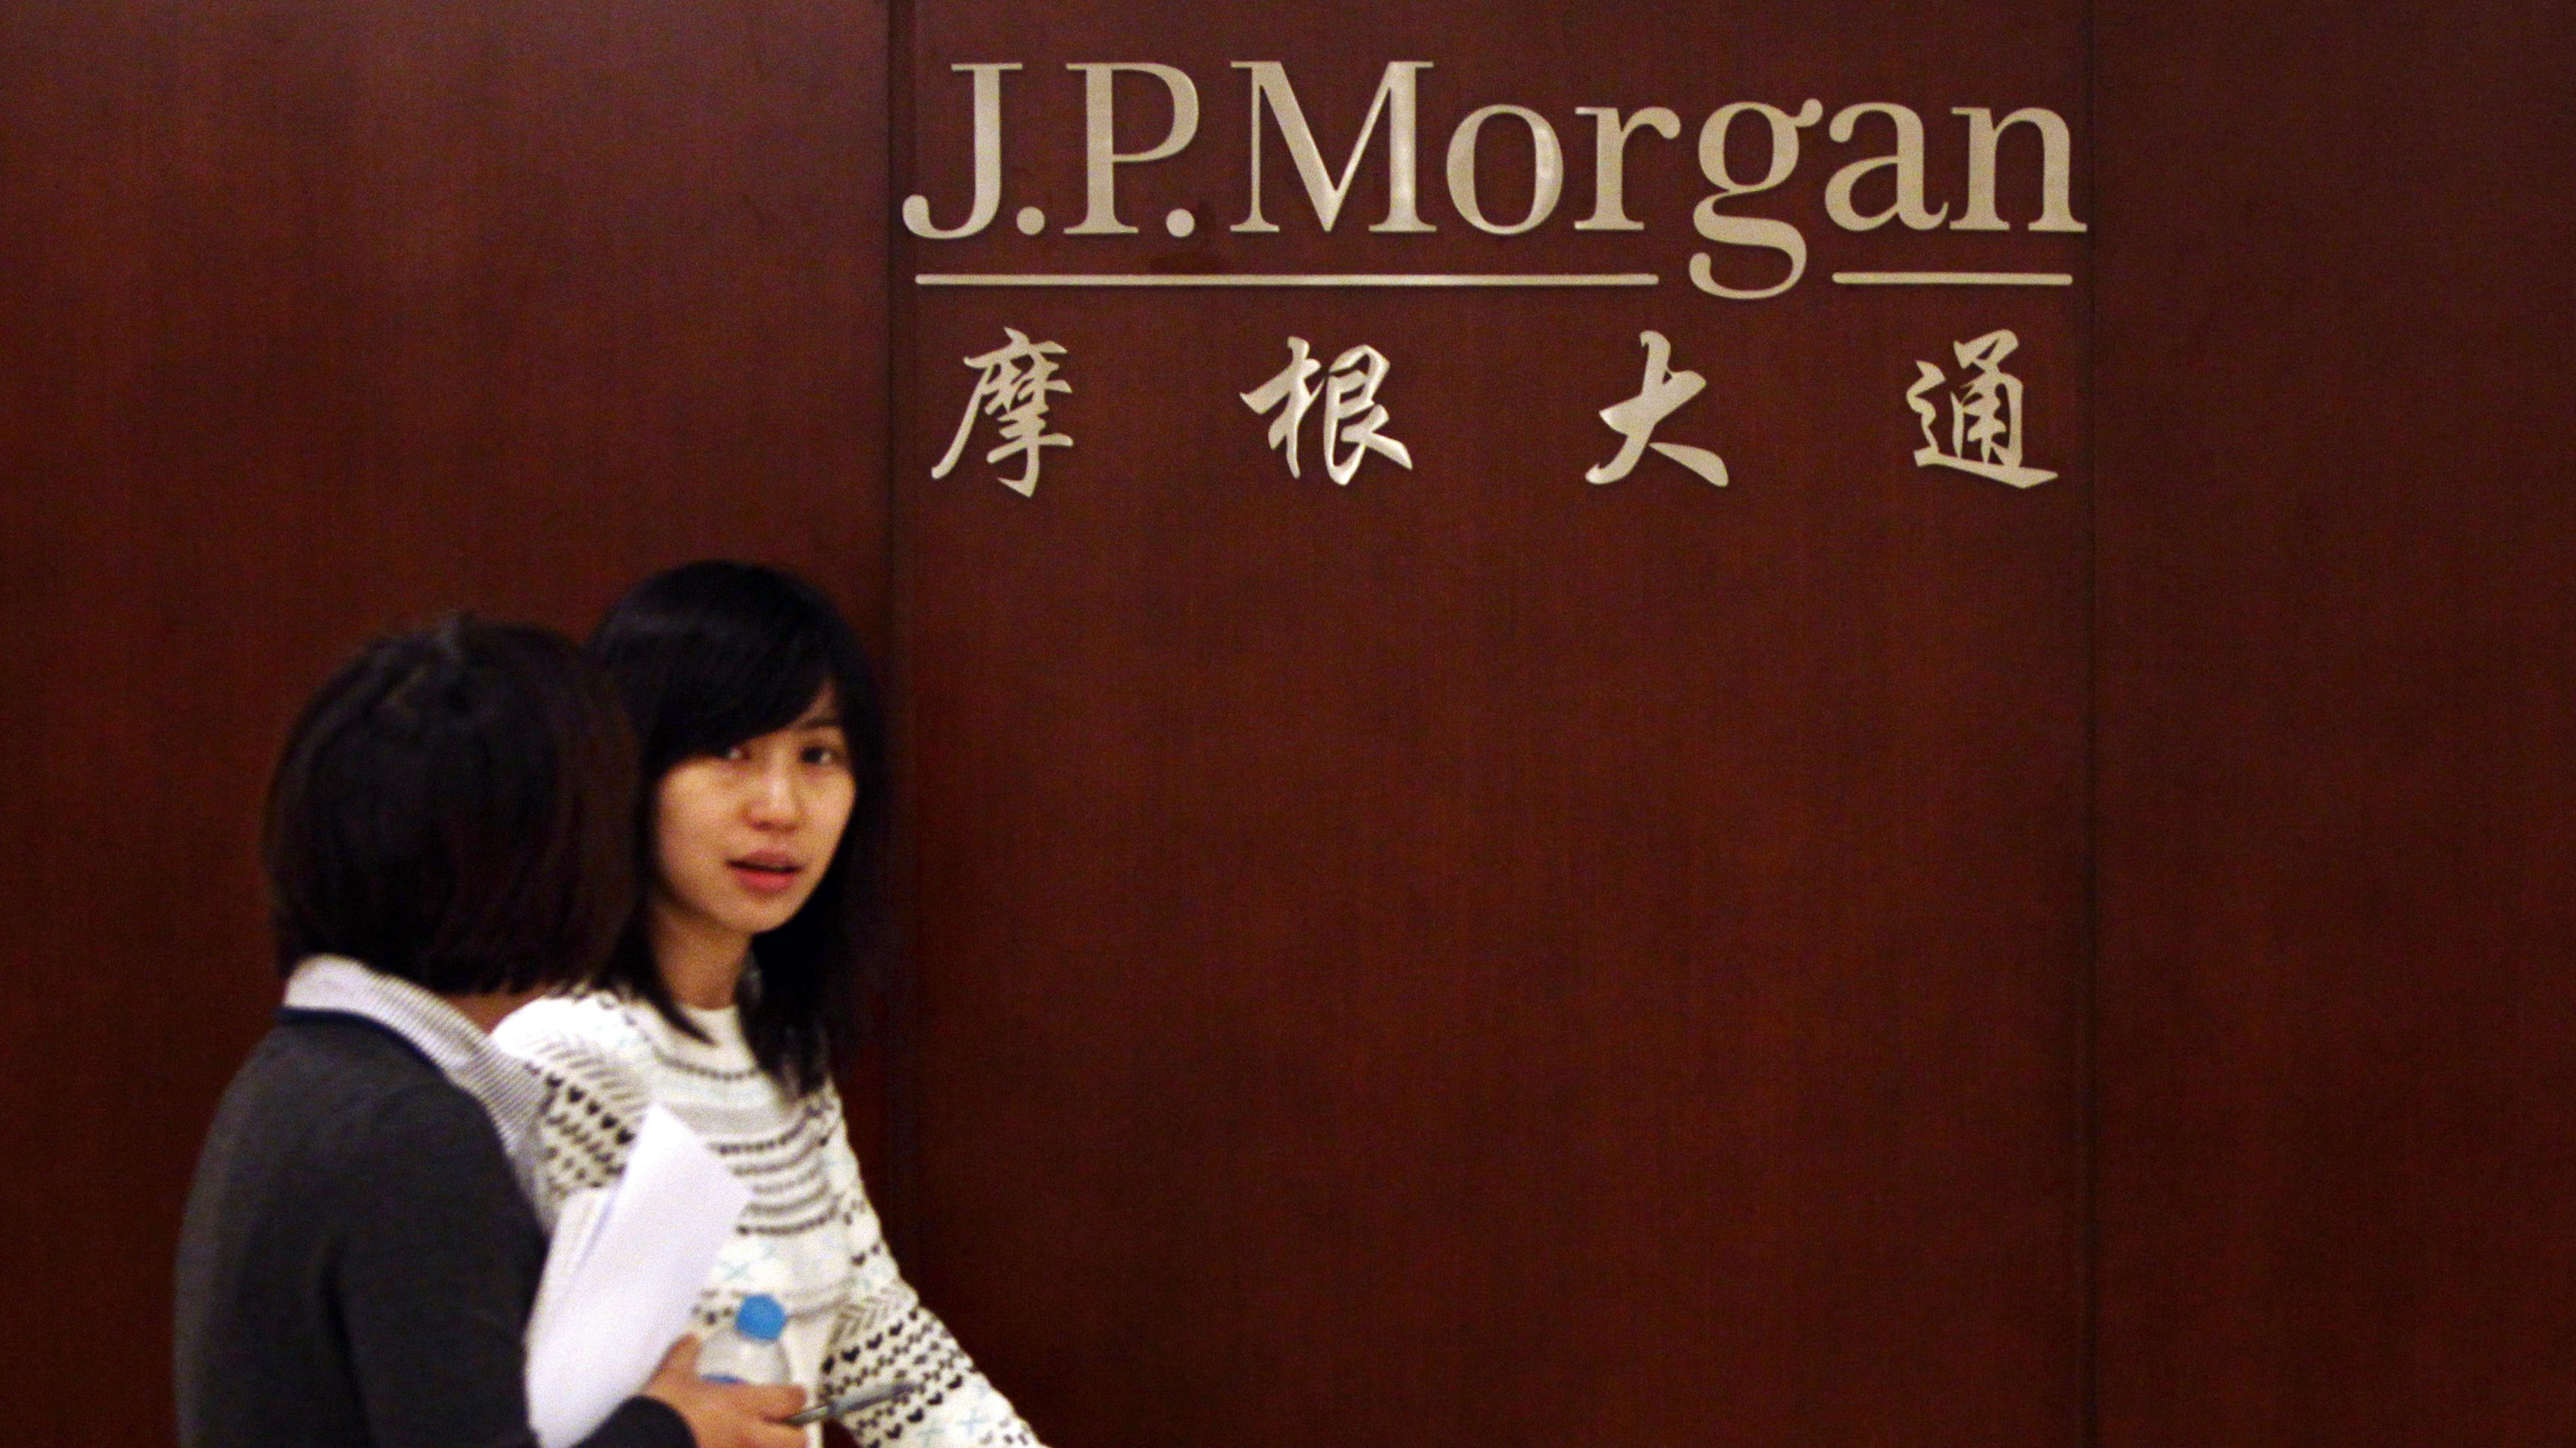 Employees walk past the company logo at the JPMorgan Beijing office in Beijing December 13, 2010. JPMorgan & Chase Co will see record revenues from China this year, as the second-largest U.S. bank benefits from a surge in equity raising by Chinese companies, the head of the bank's China investment banking business said on Monday at the Reuters China Investment Summit. REUTERS/Jason Lee(CHINA - Tags: BUSINESS) - RTXVOOH